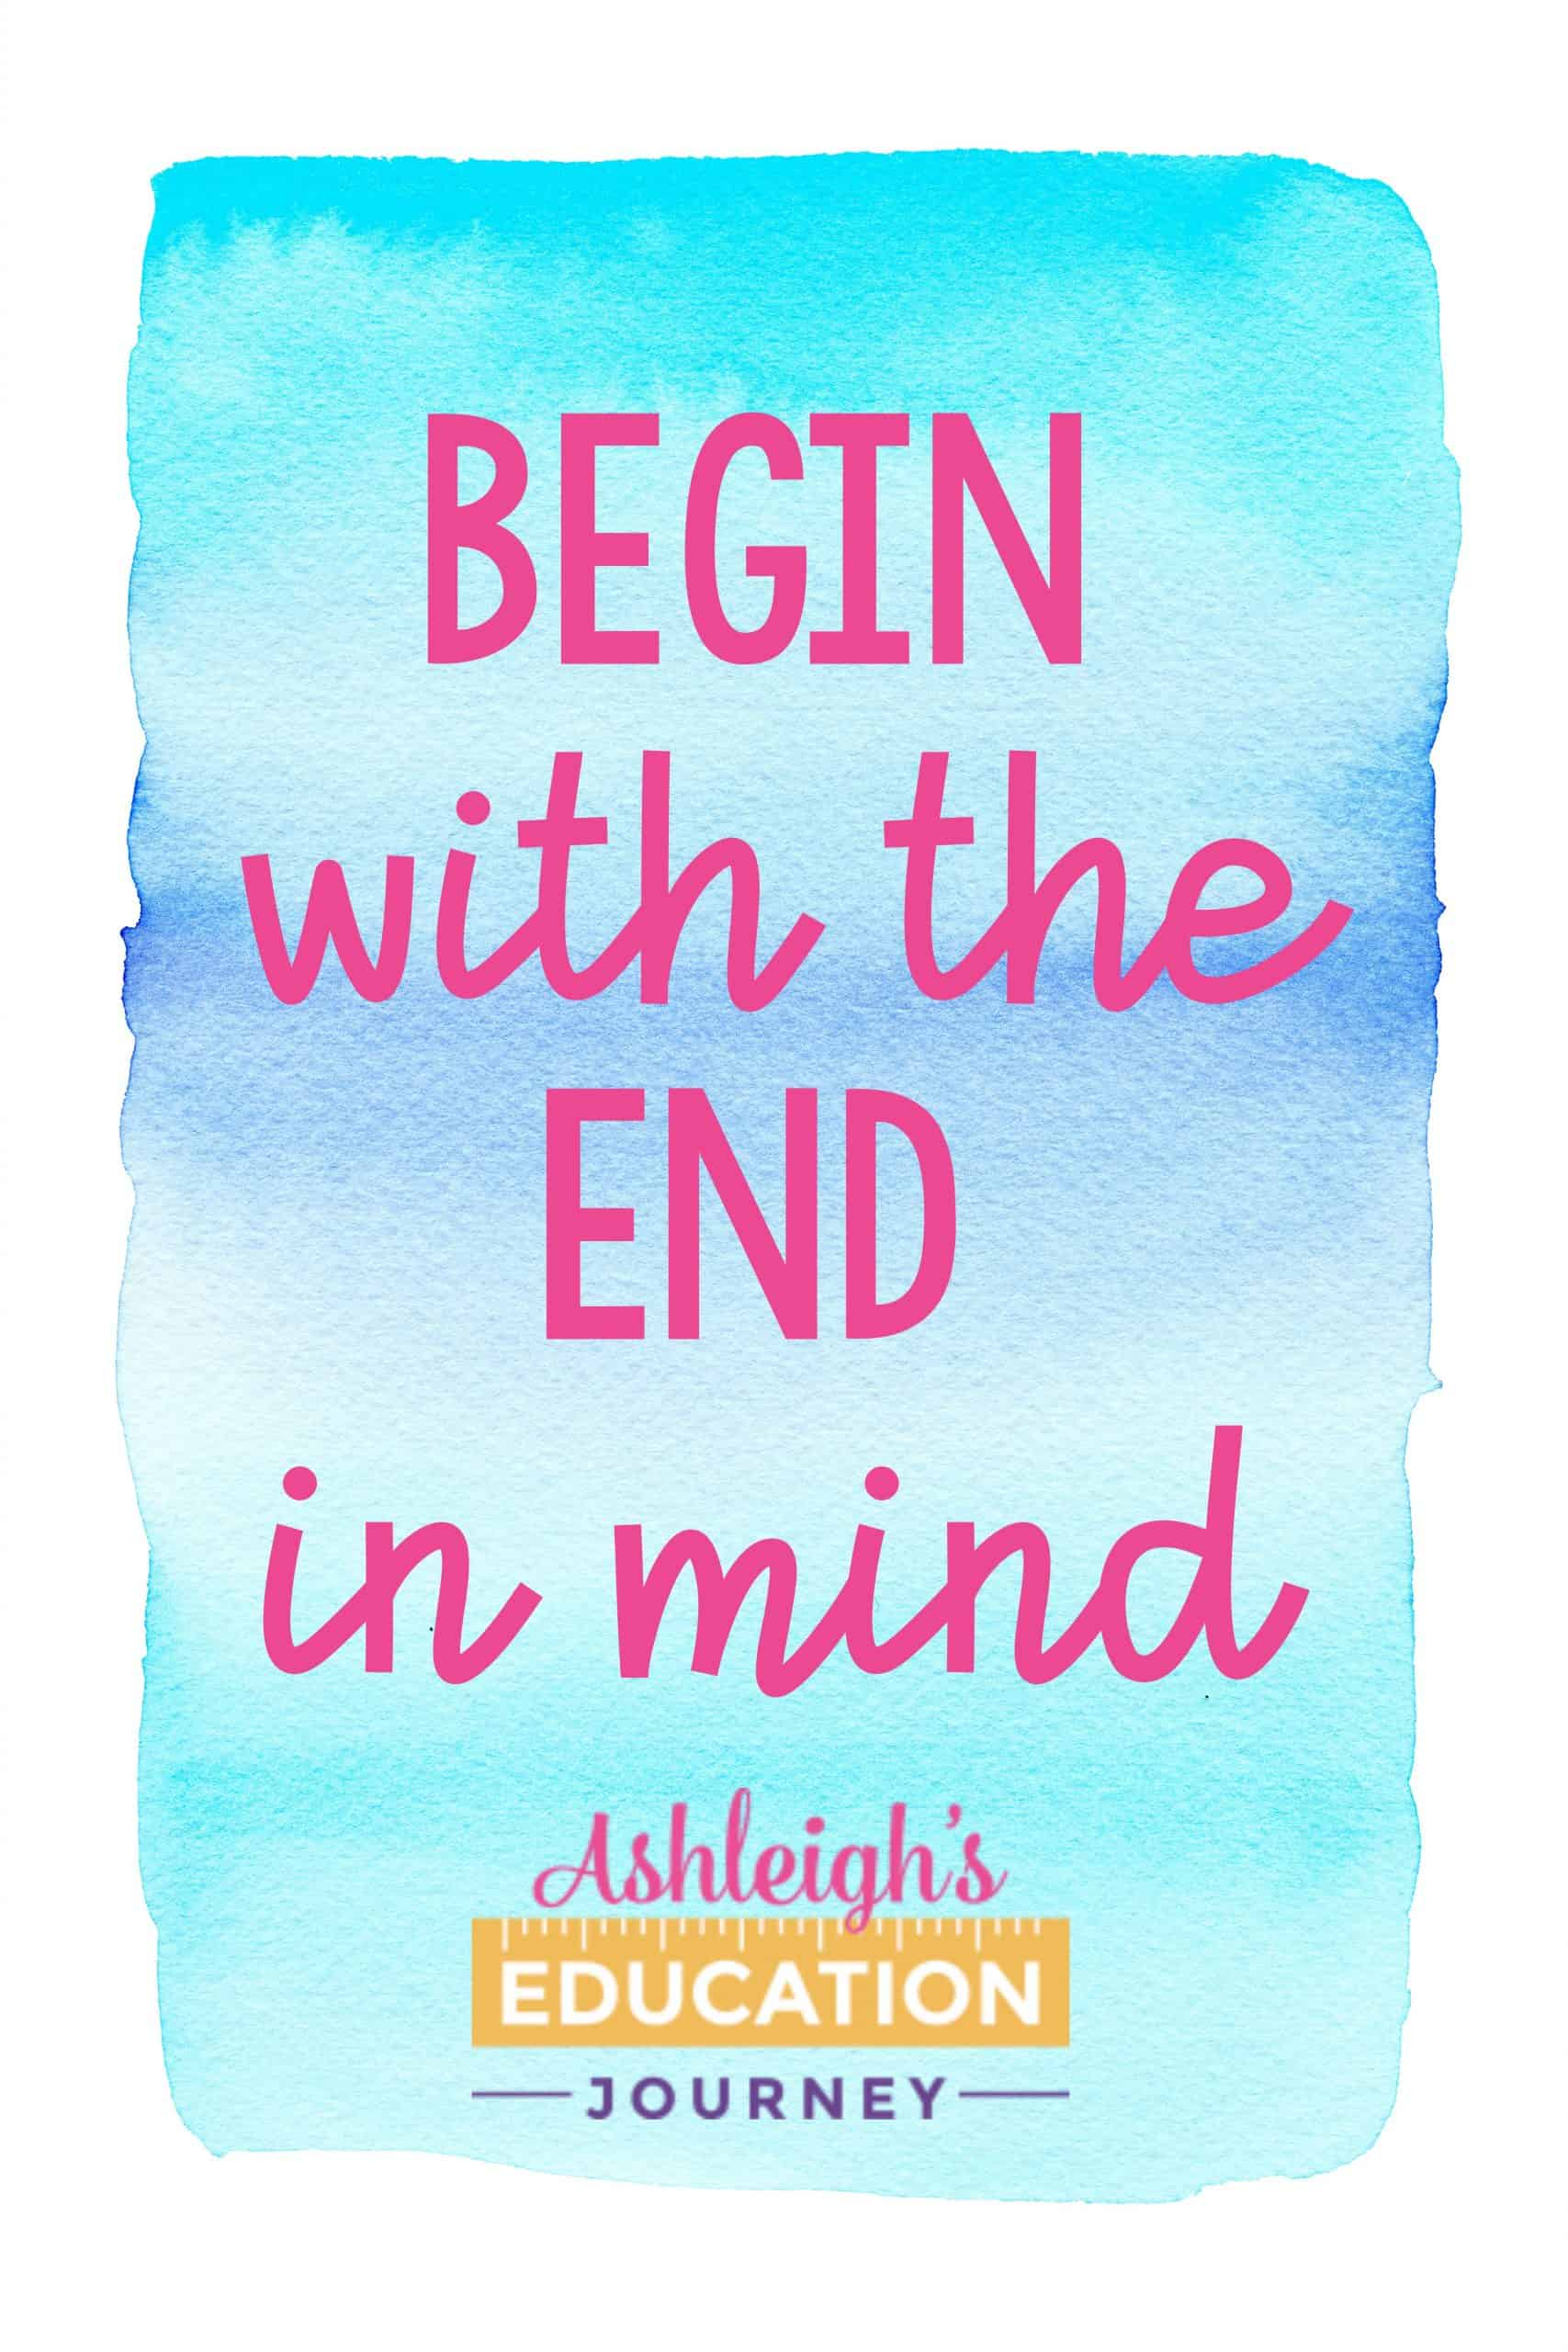 Begin with the end in mind motivational graphic